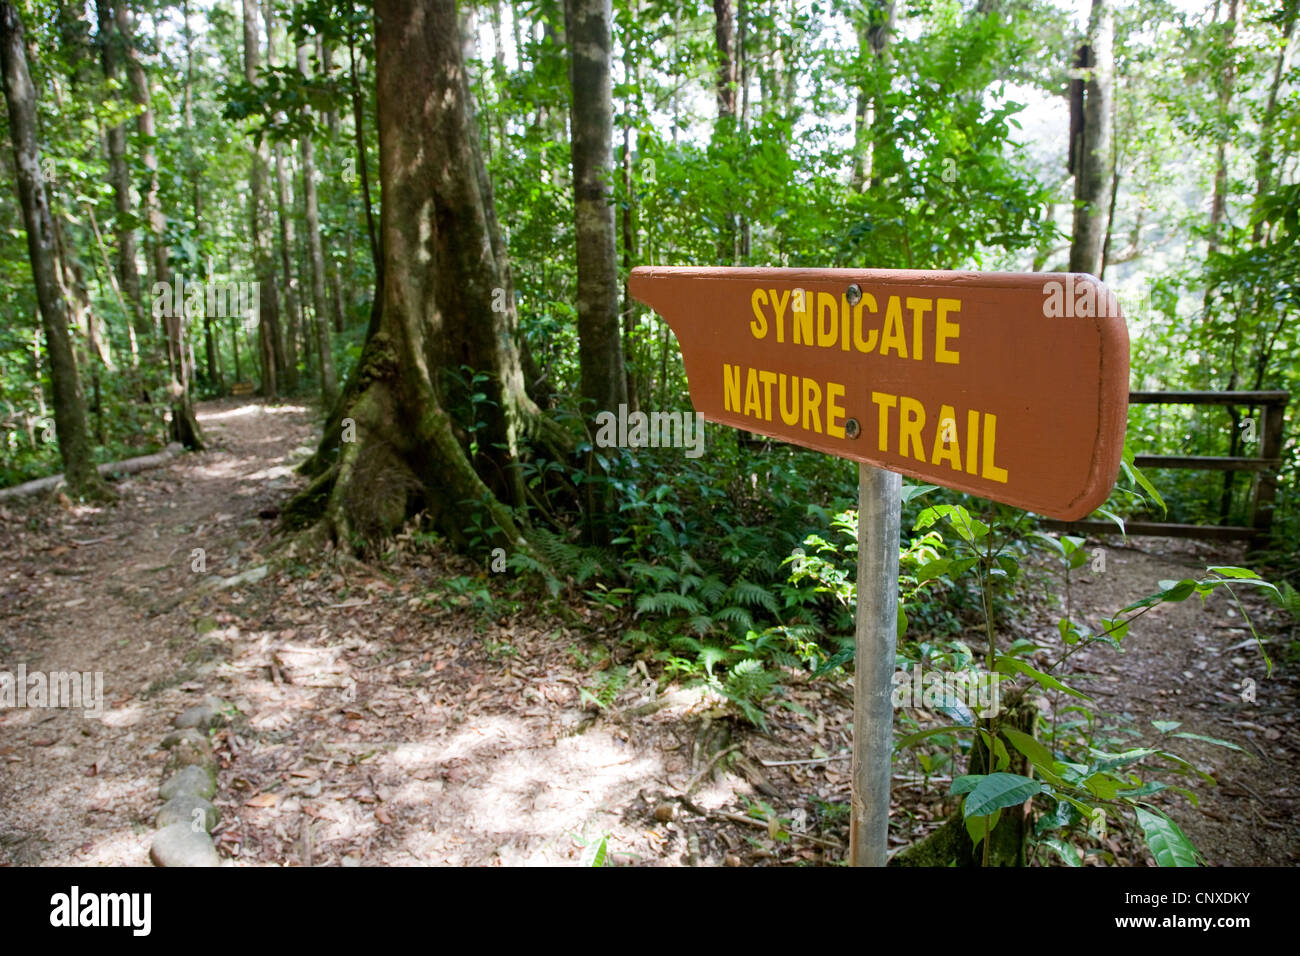 Syndicate Nature trail sign in primary rain forest of Dominica West Indies - Stock Image